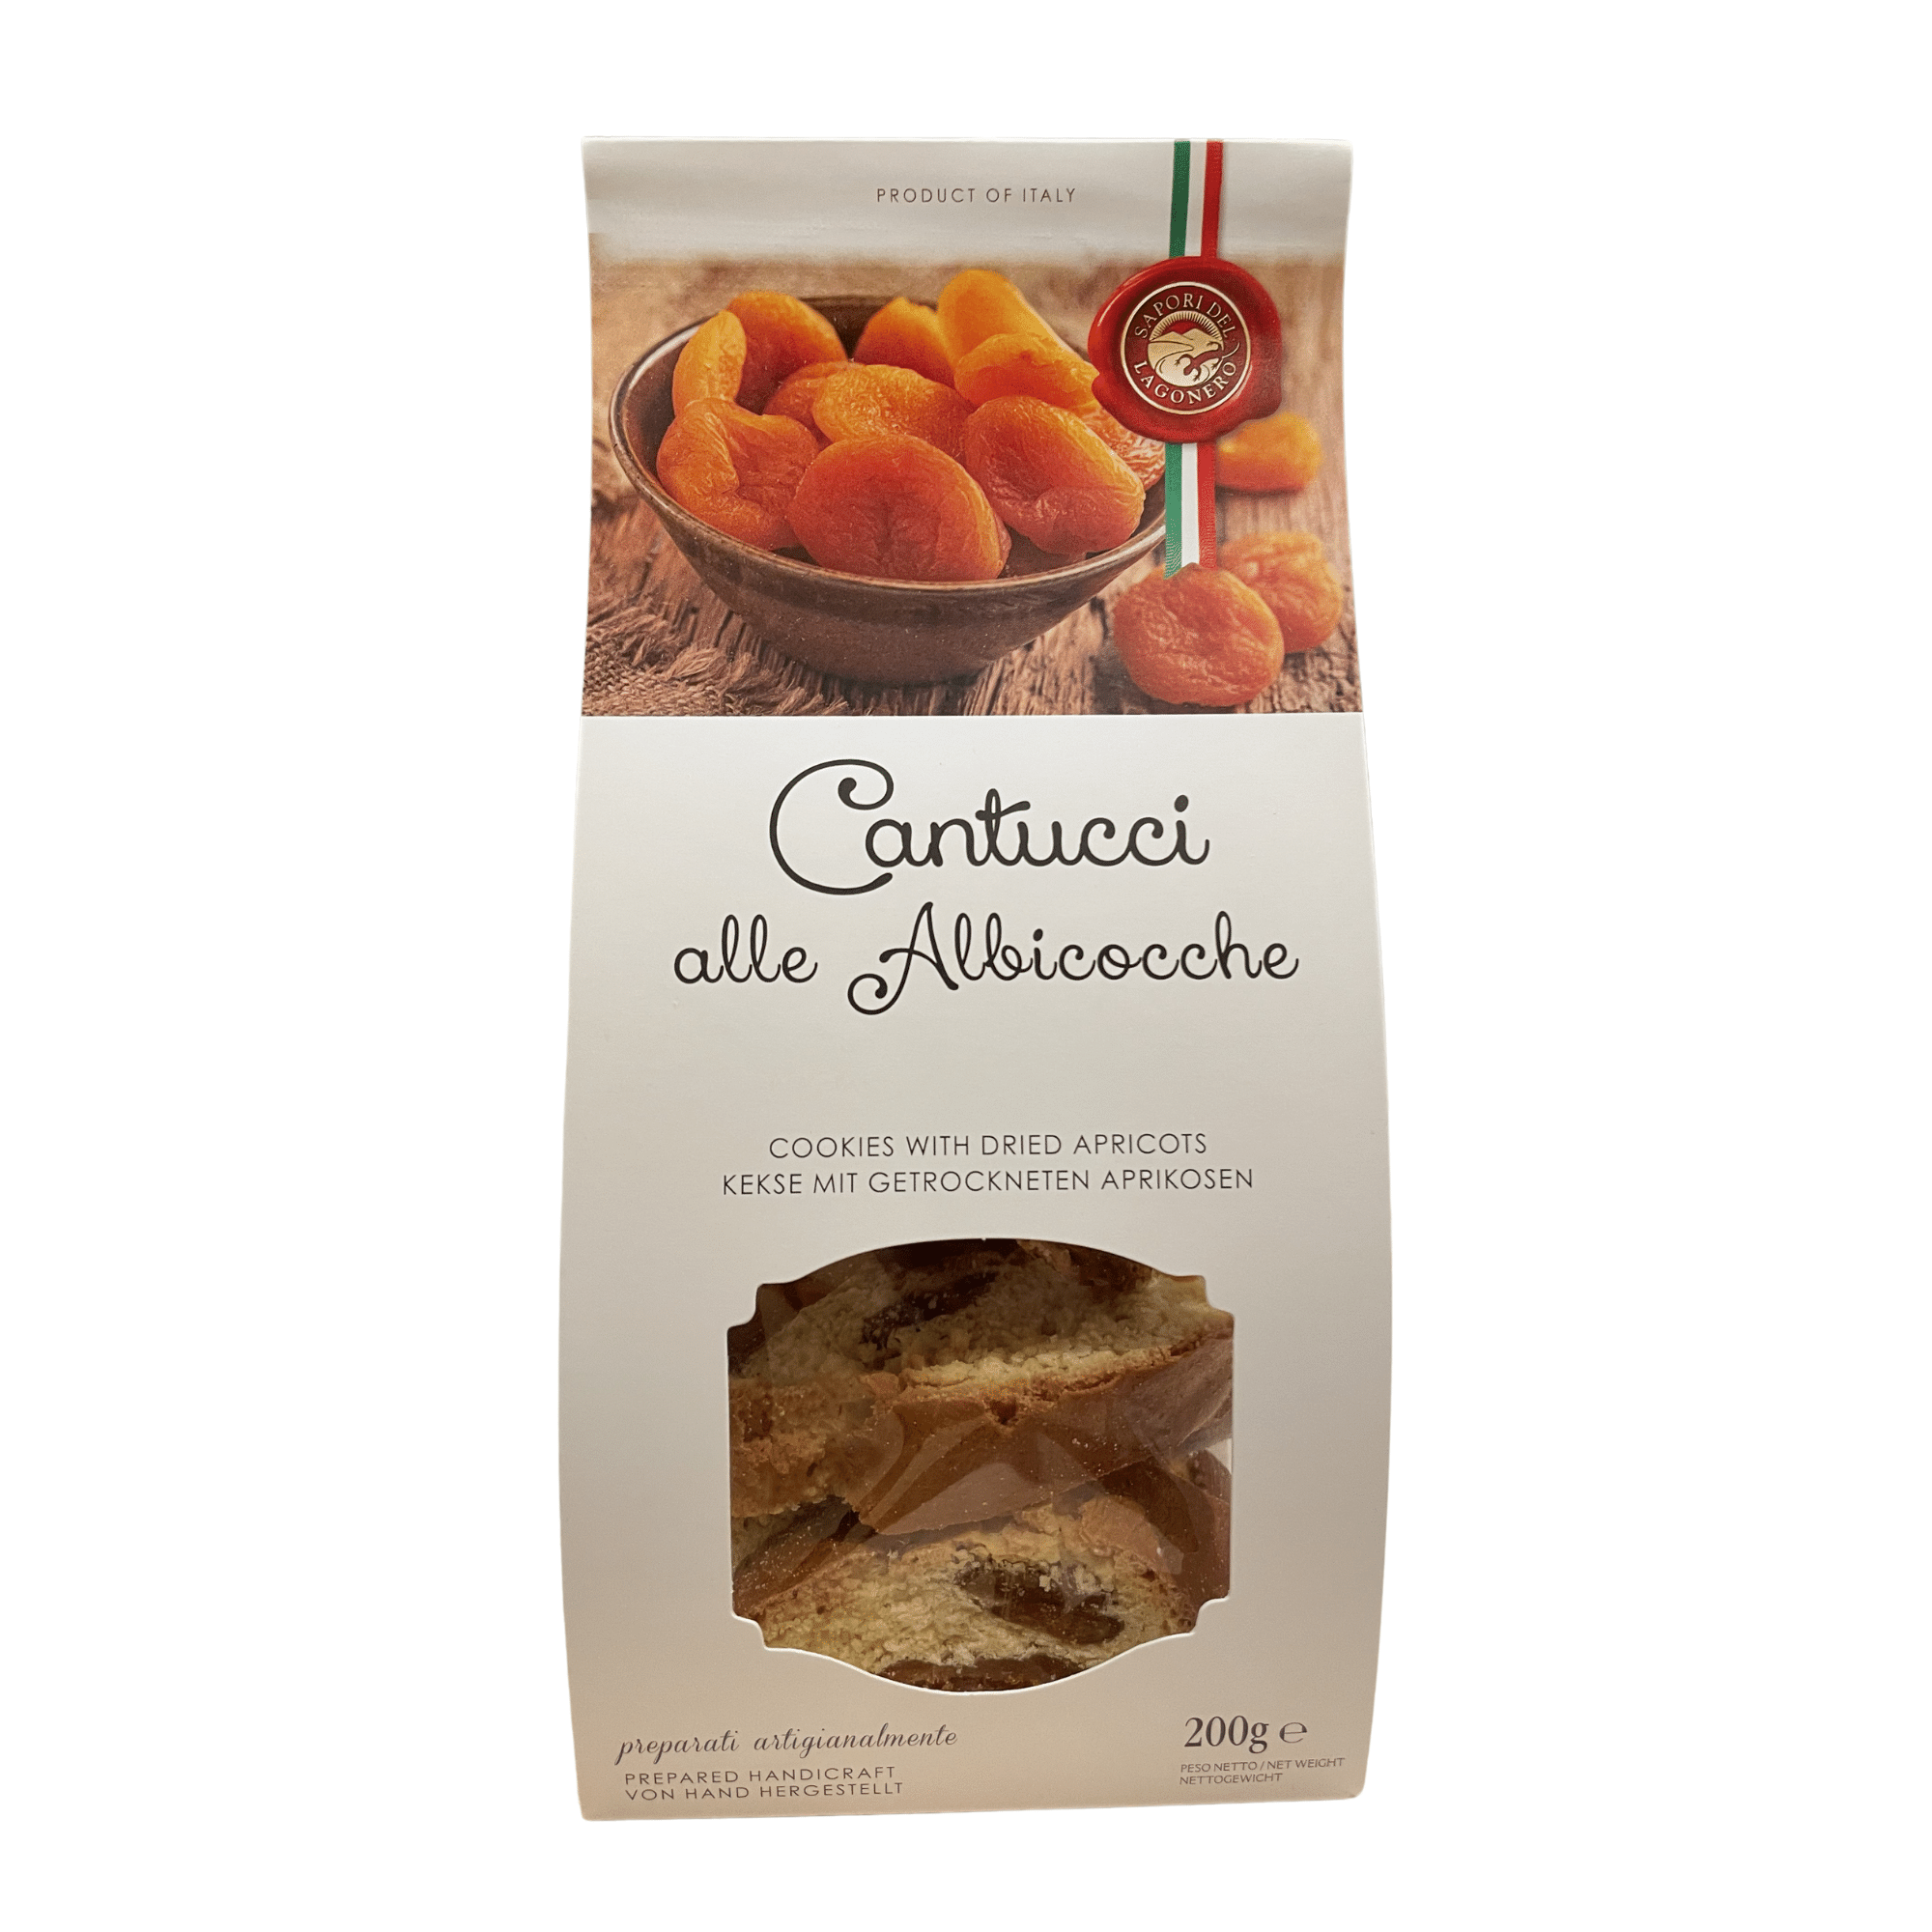 Biscotti with Dried Apricots - Artisan Deli Market